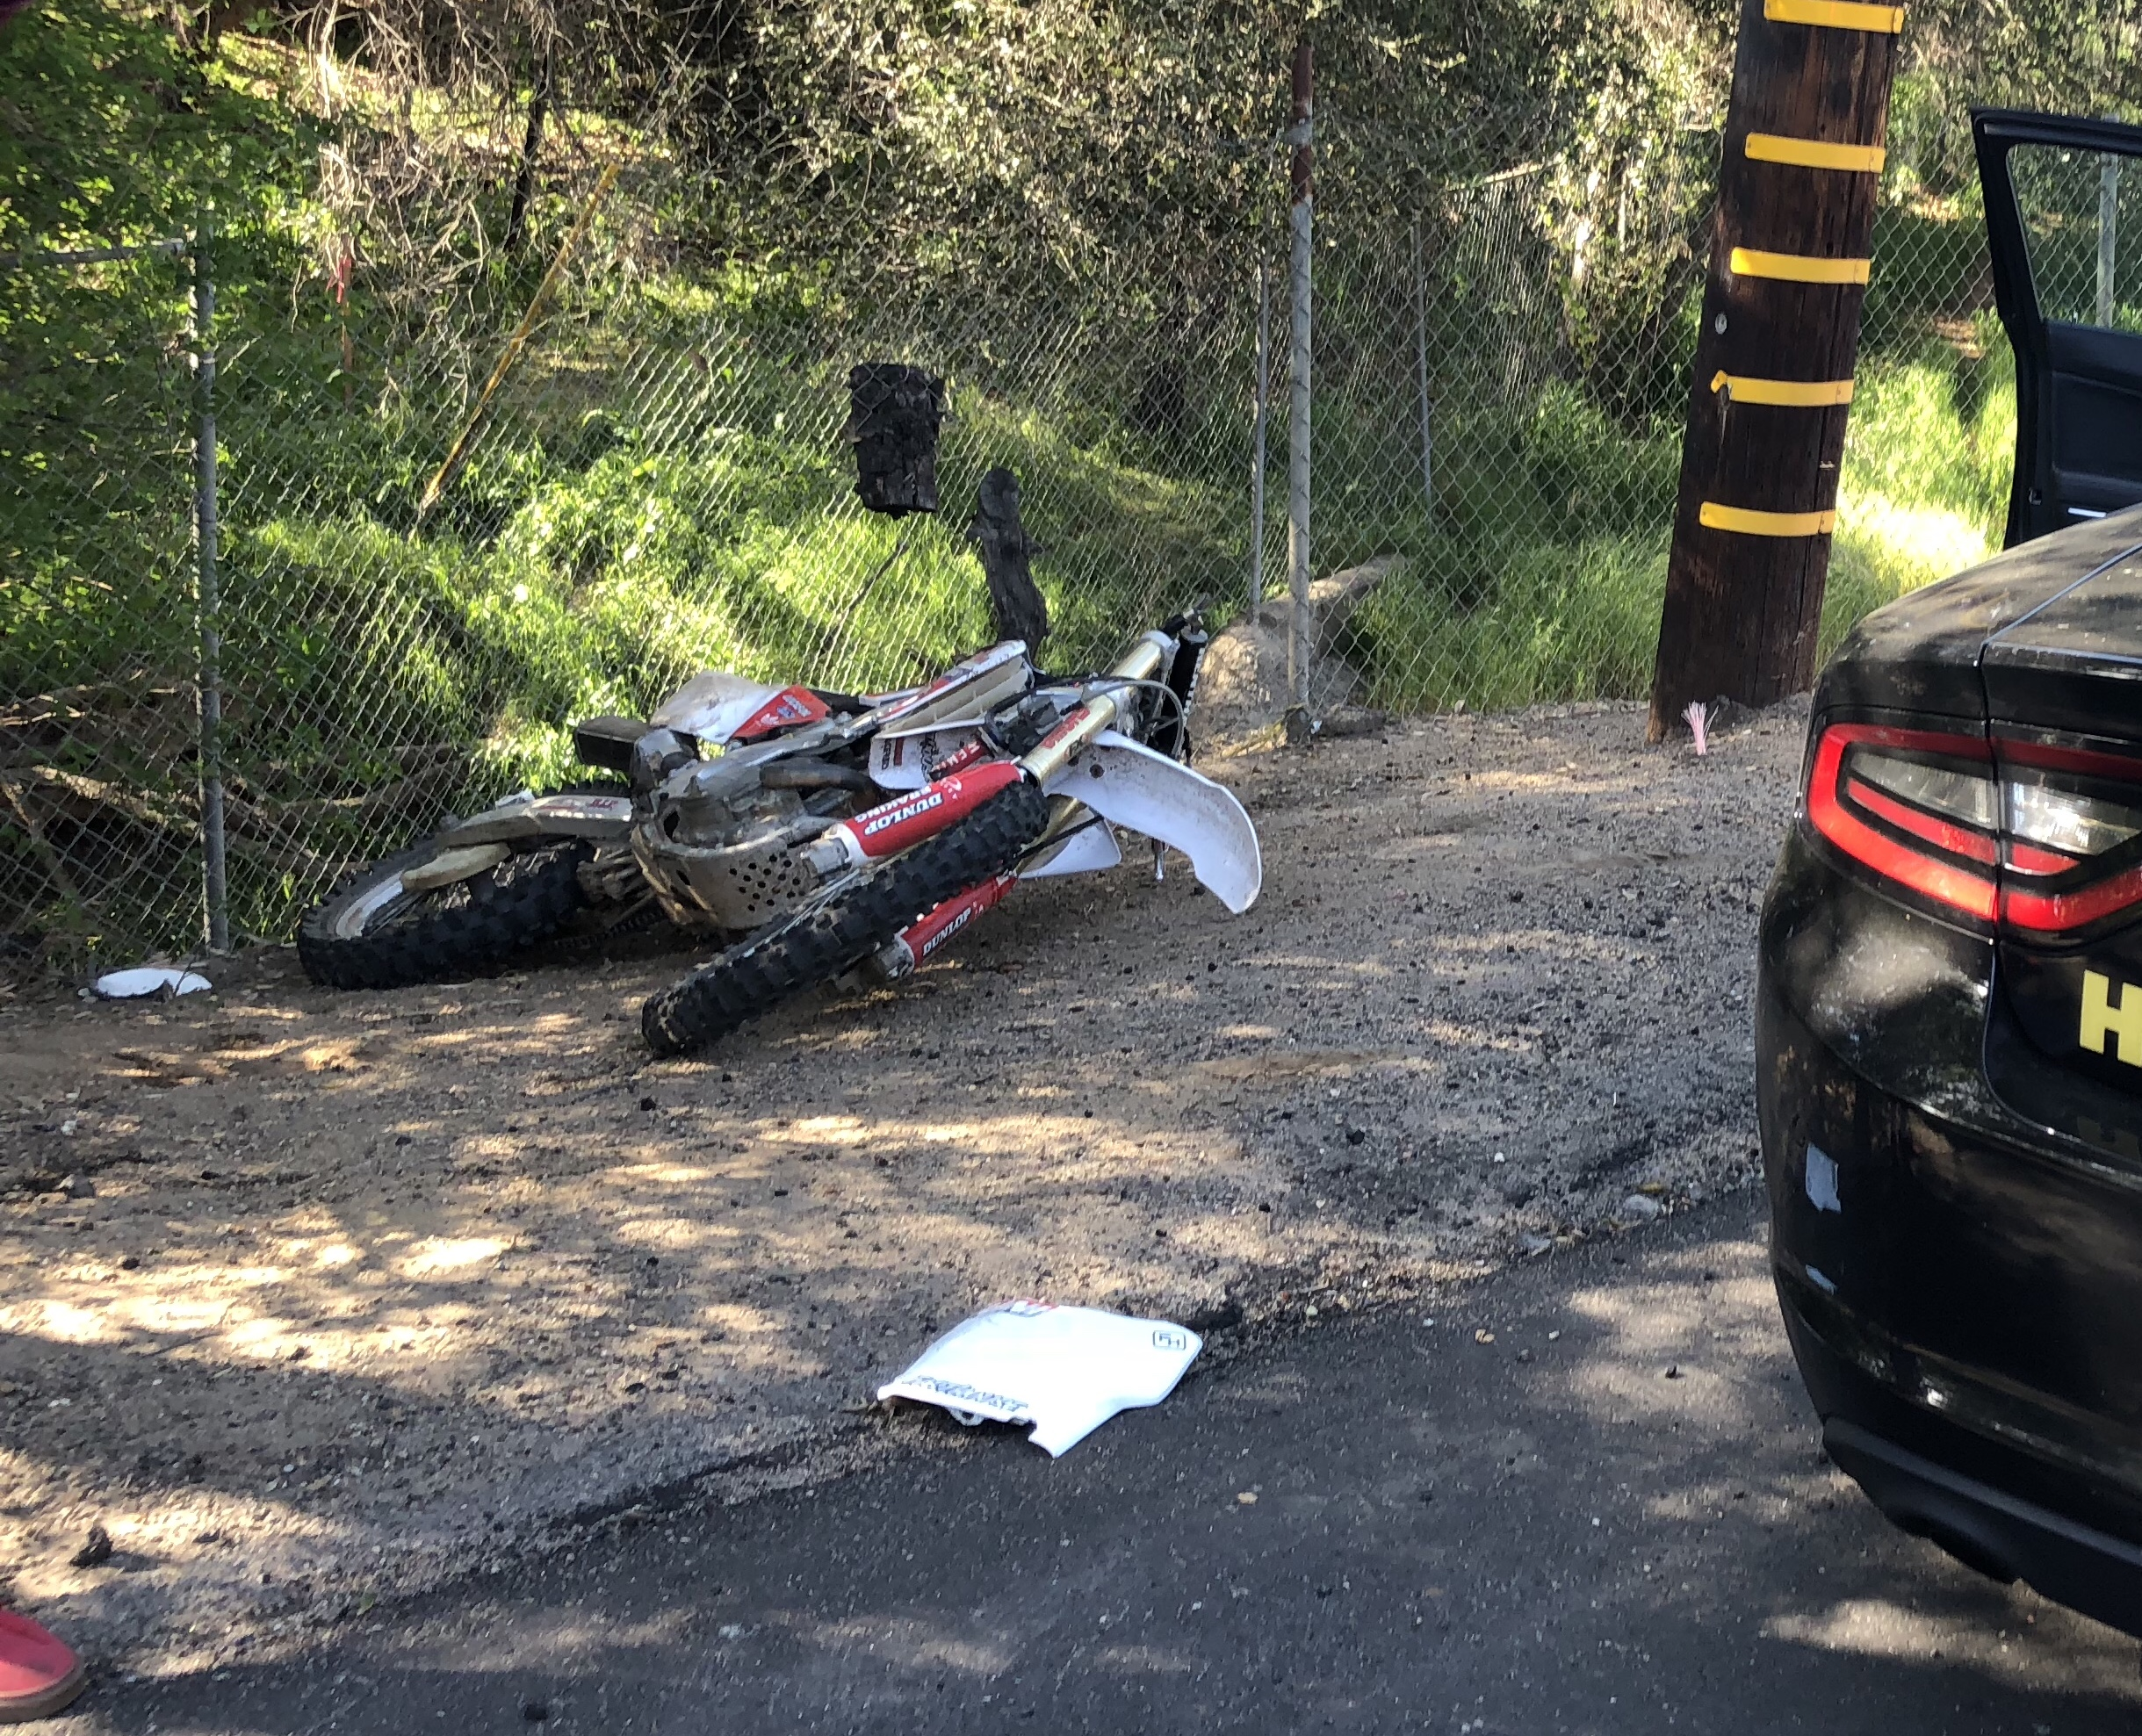 motorcycle fatality pictures  Motorcycle Fatality on MacTan   Valley Roadrunner